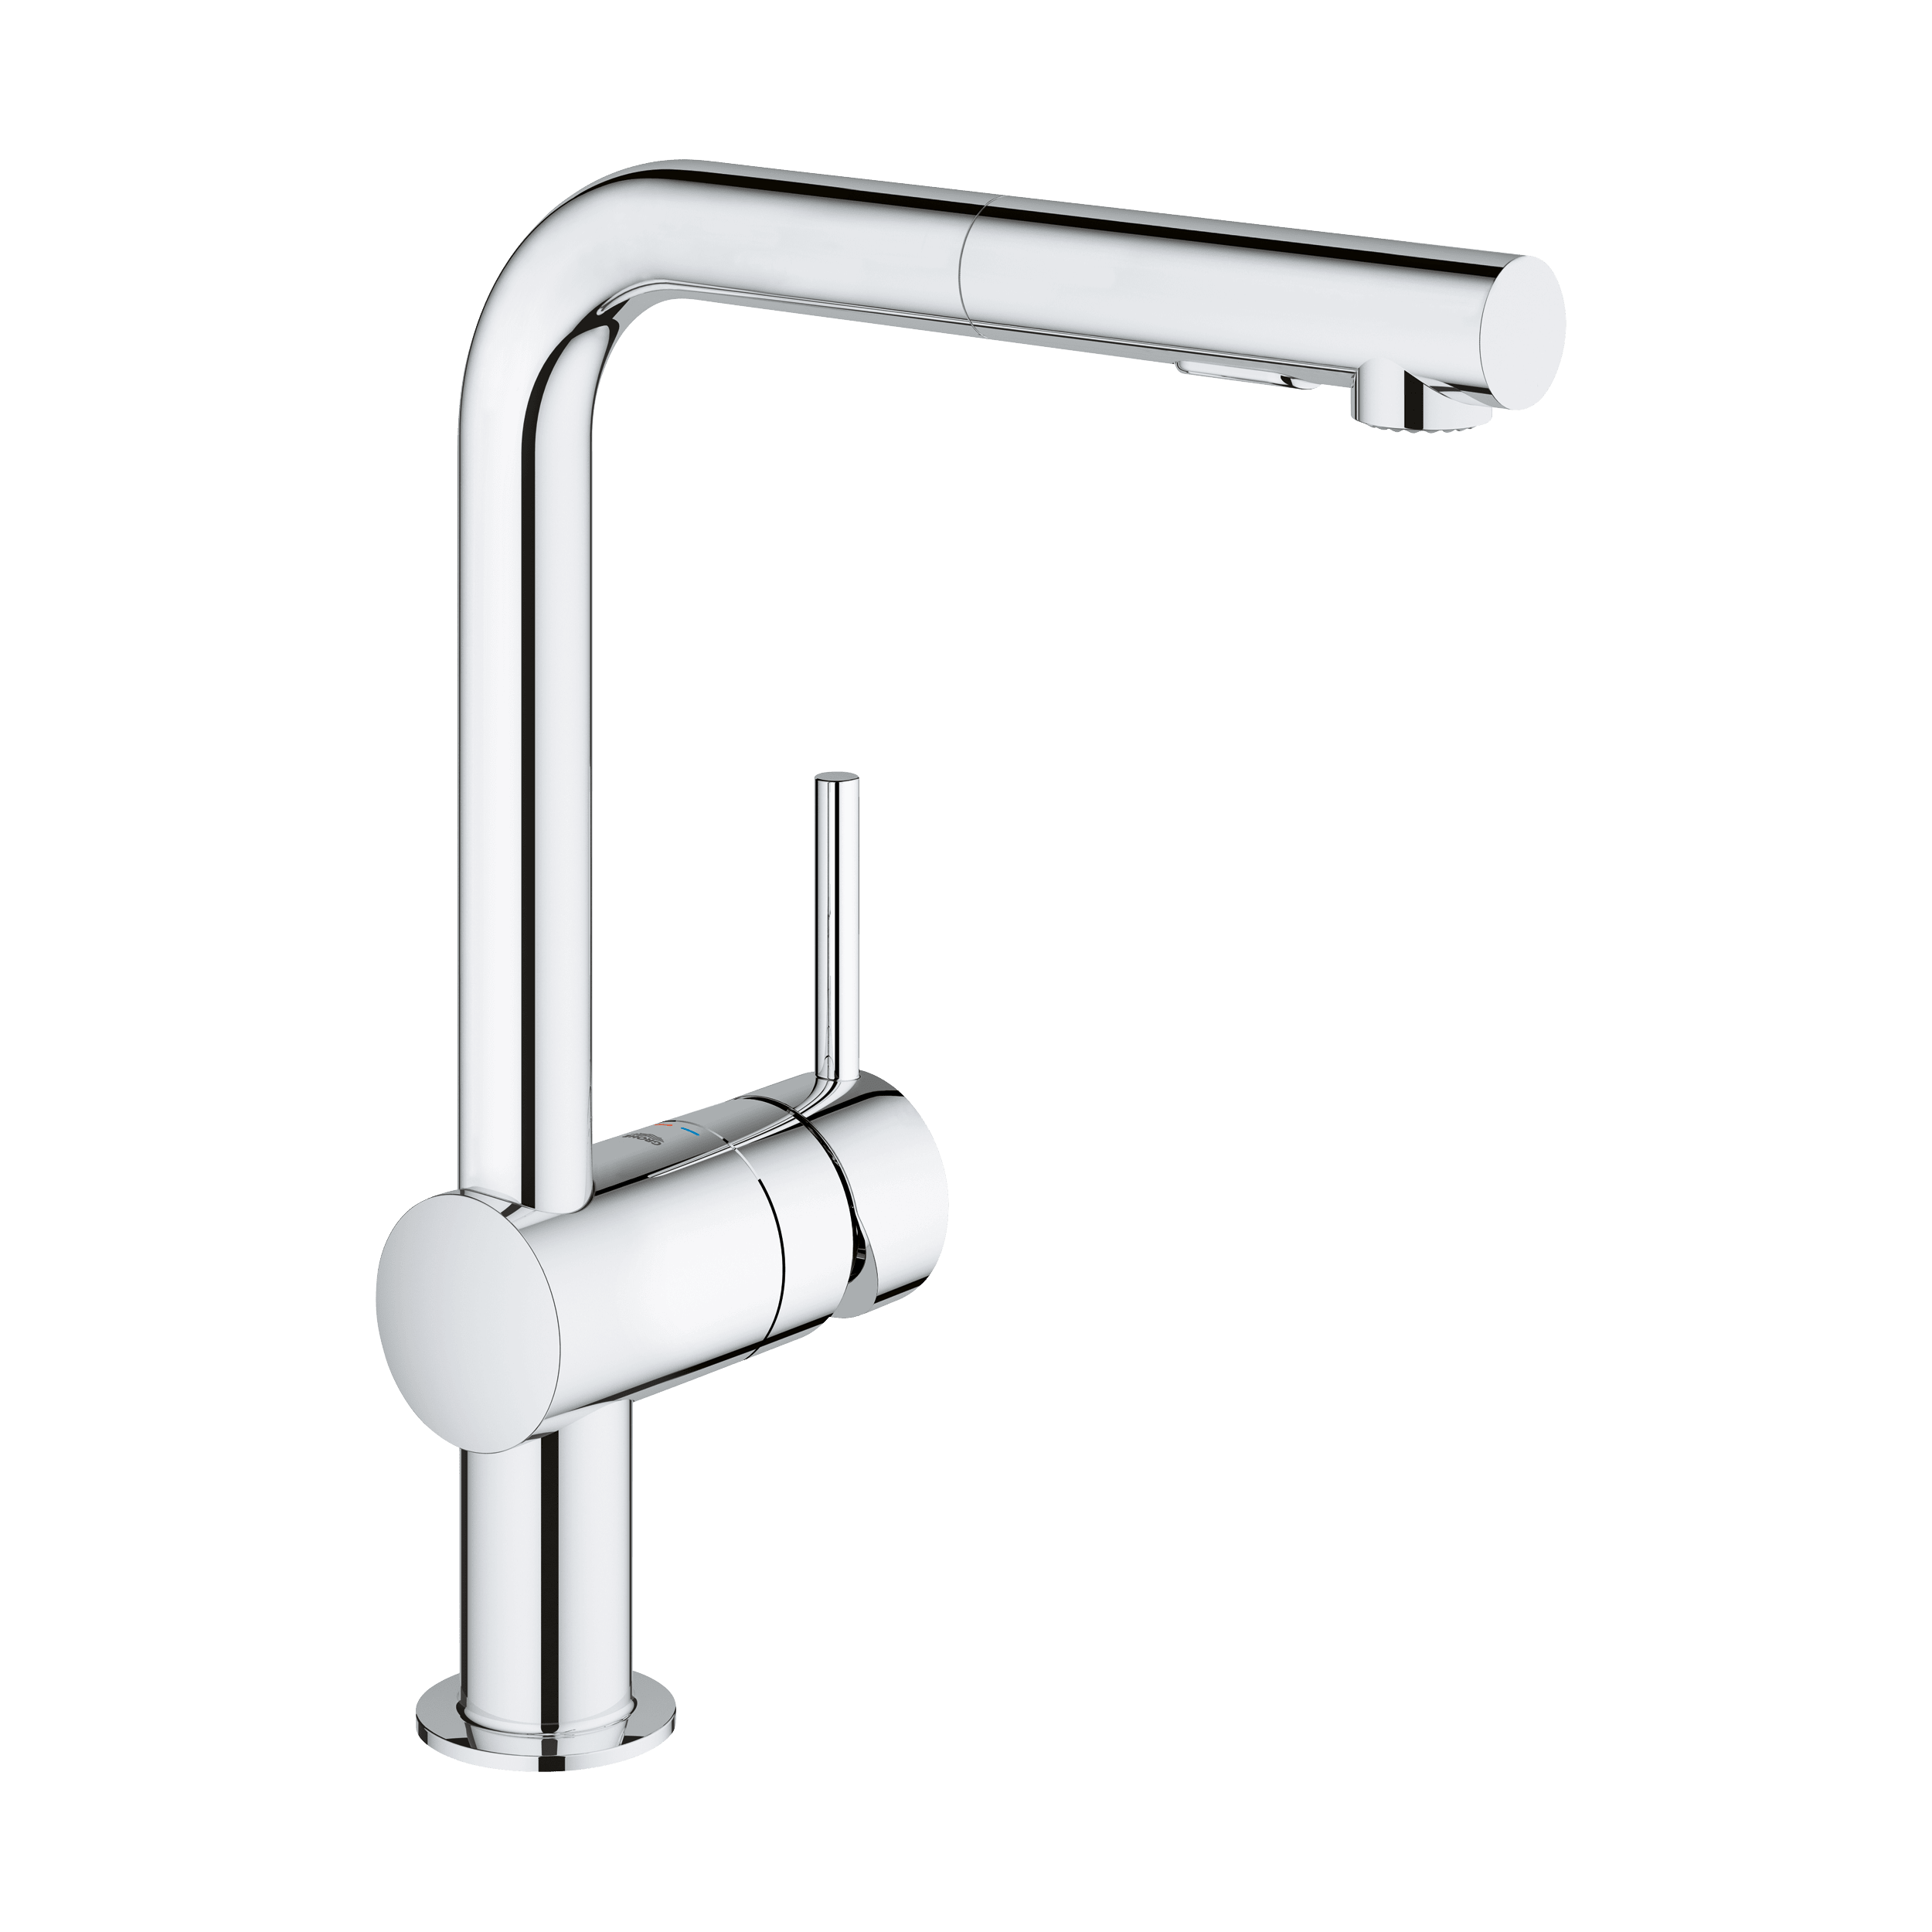 collection with new perrin inch faucet chrome barclay rohl expands sink model faucets rowe shower deco bathroom contemporary grohe bath hole